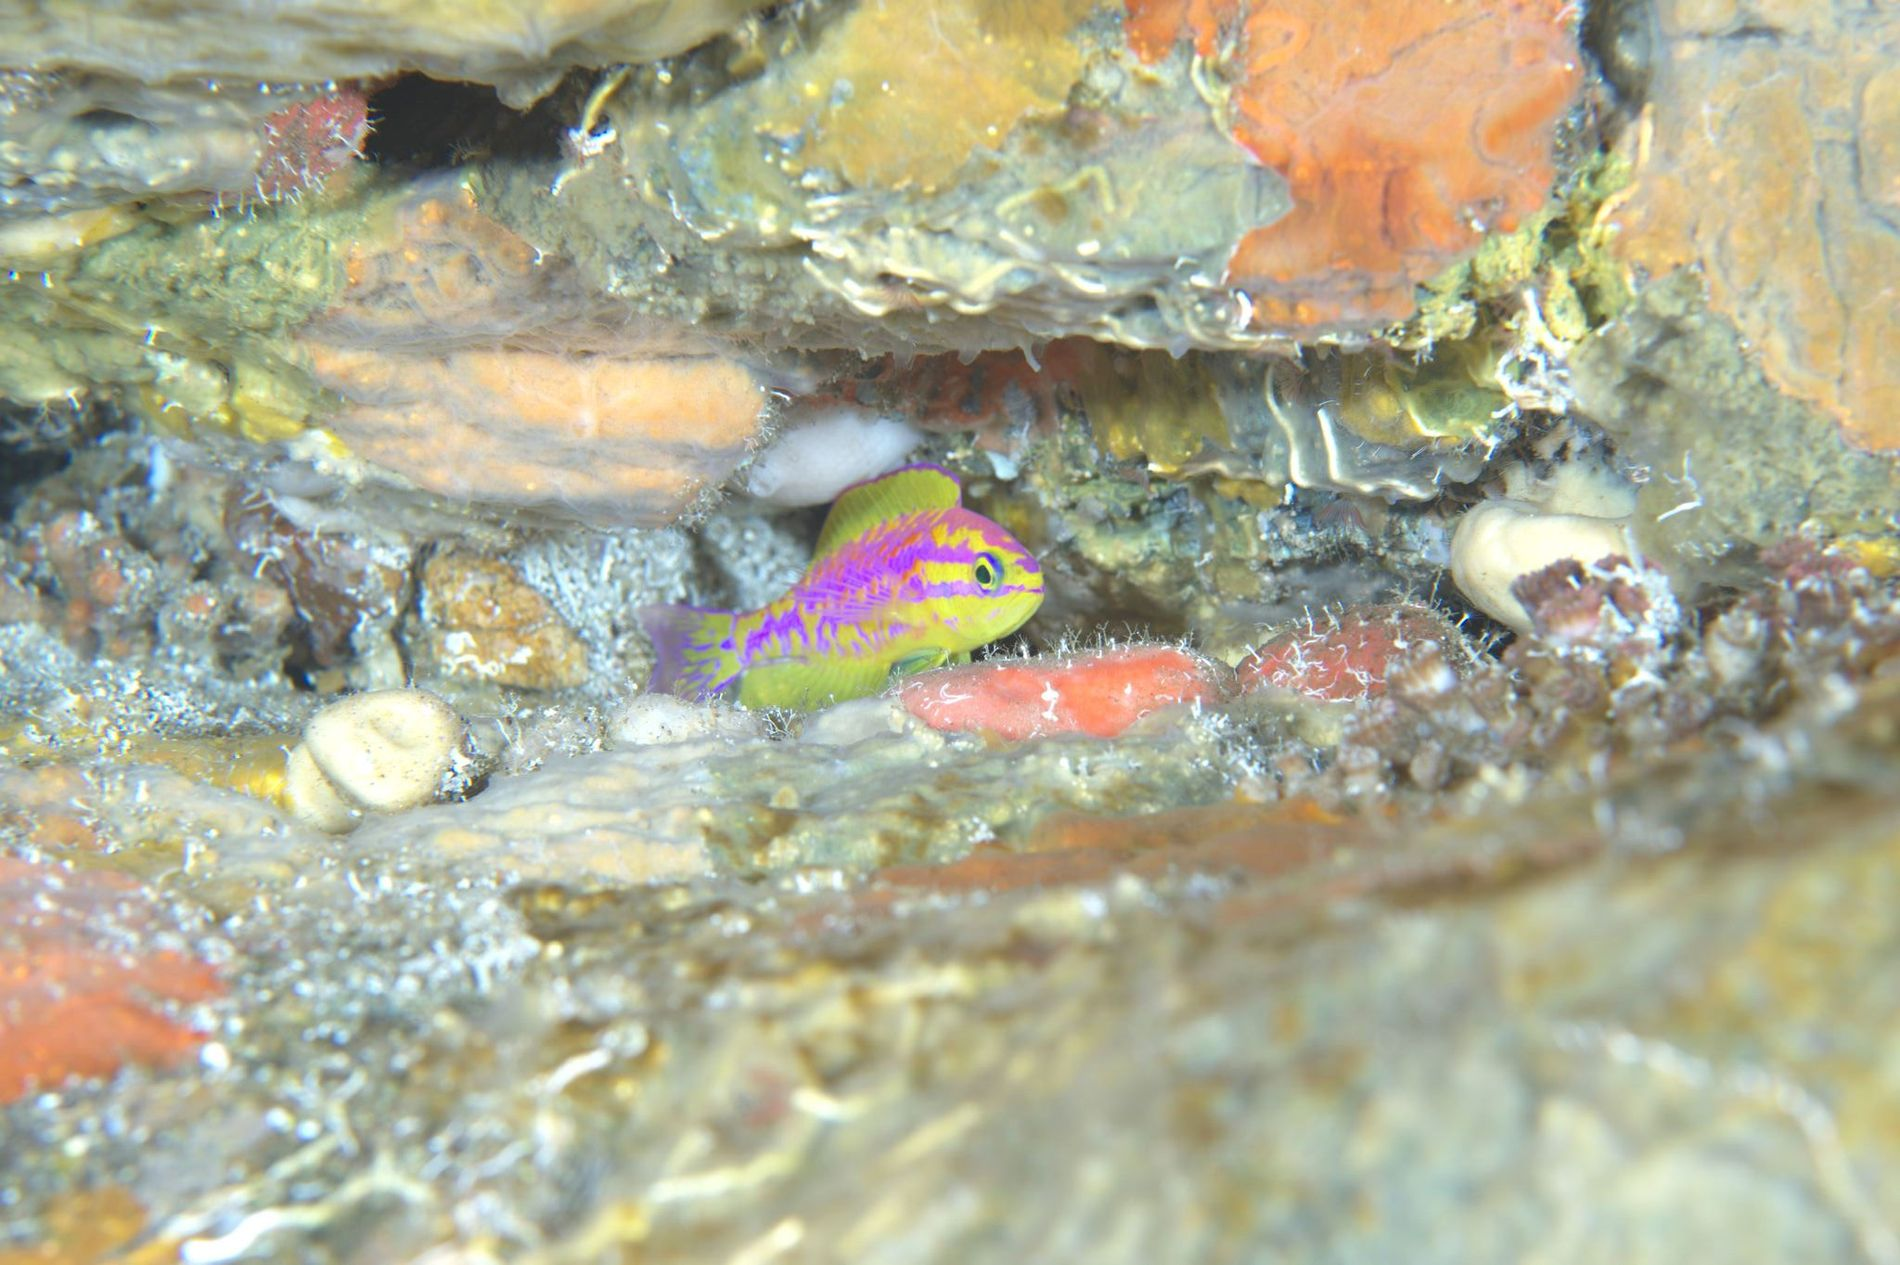 New, Ultra-Colourful Neon Fish Species Discovered